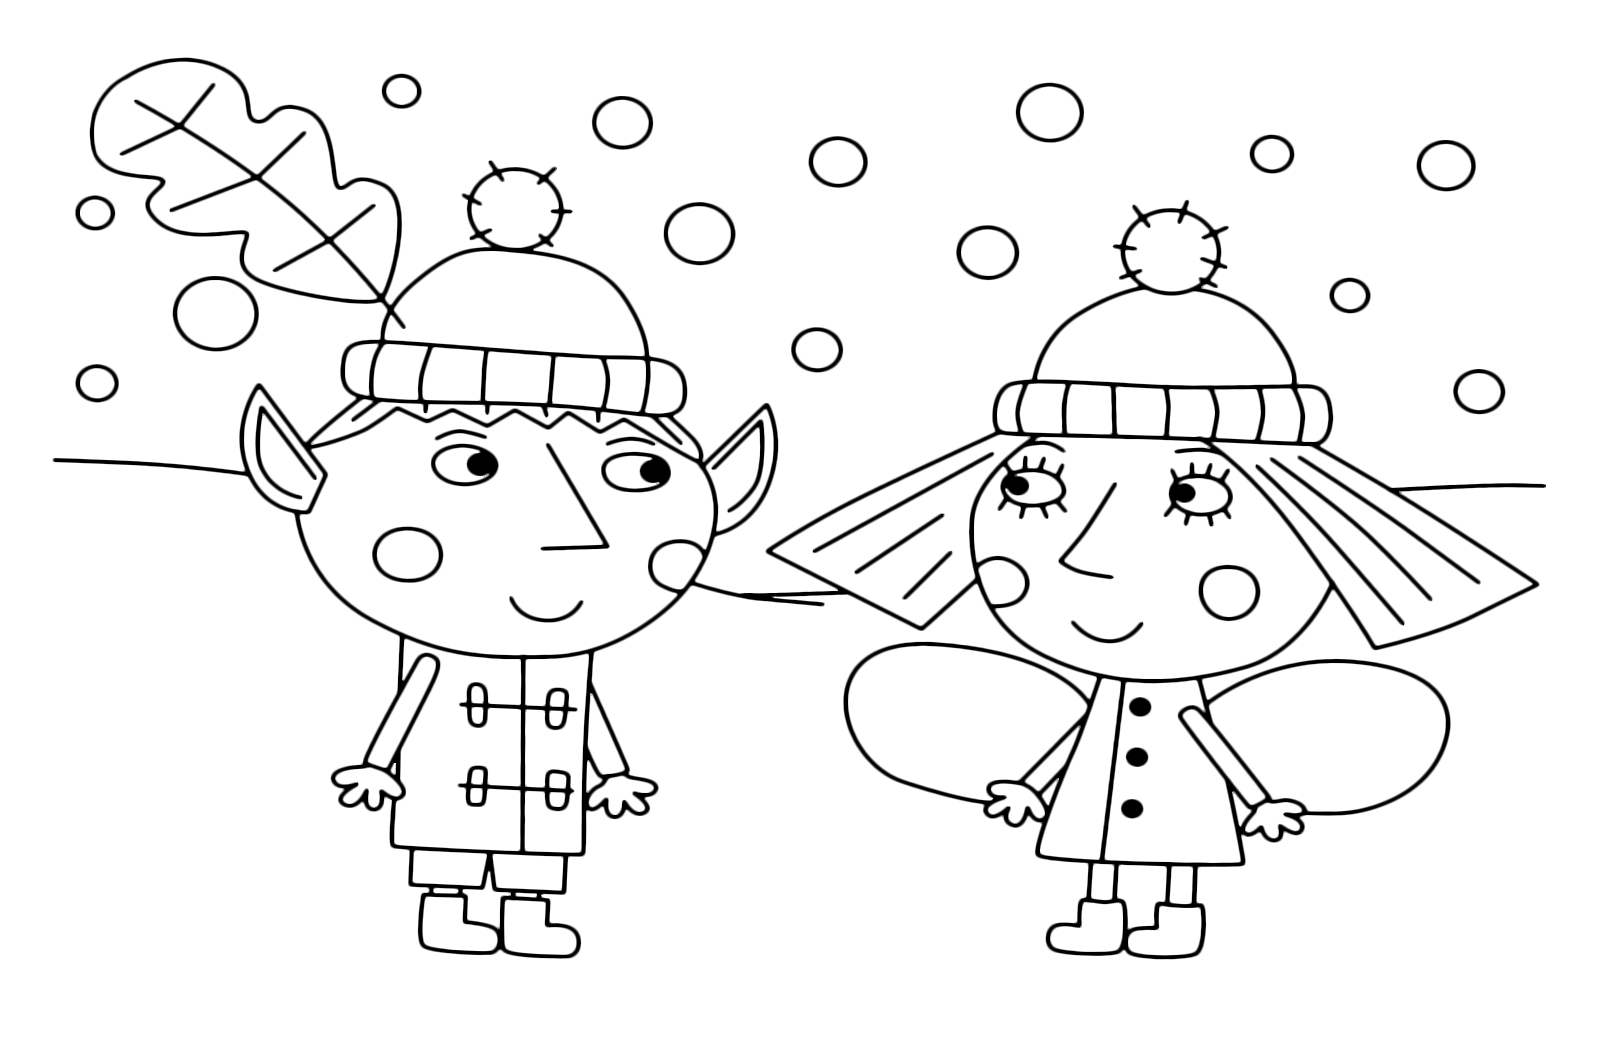 Ben Holly S Little Kingdom Ben And Holly Together As The Snow Falls